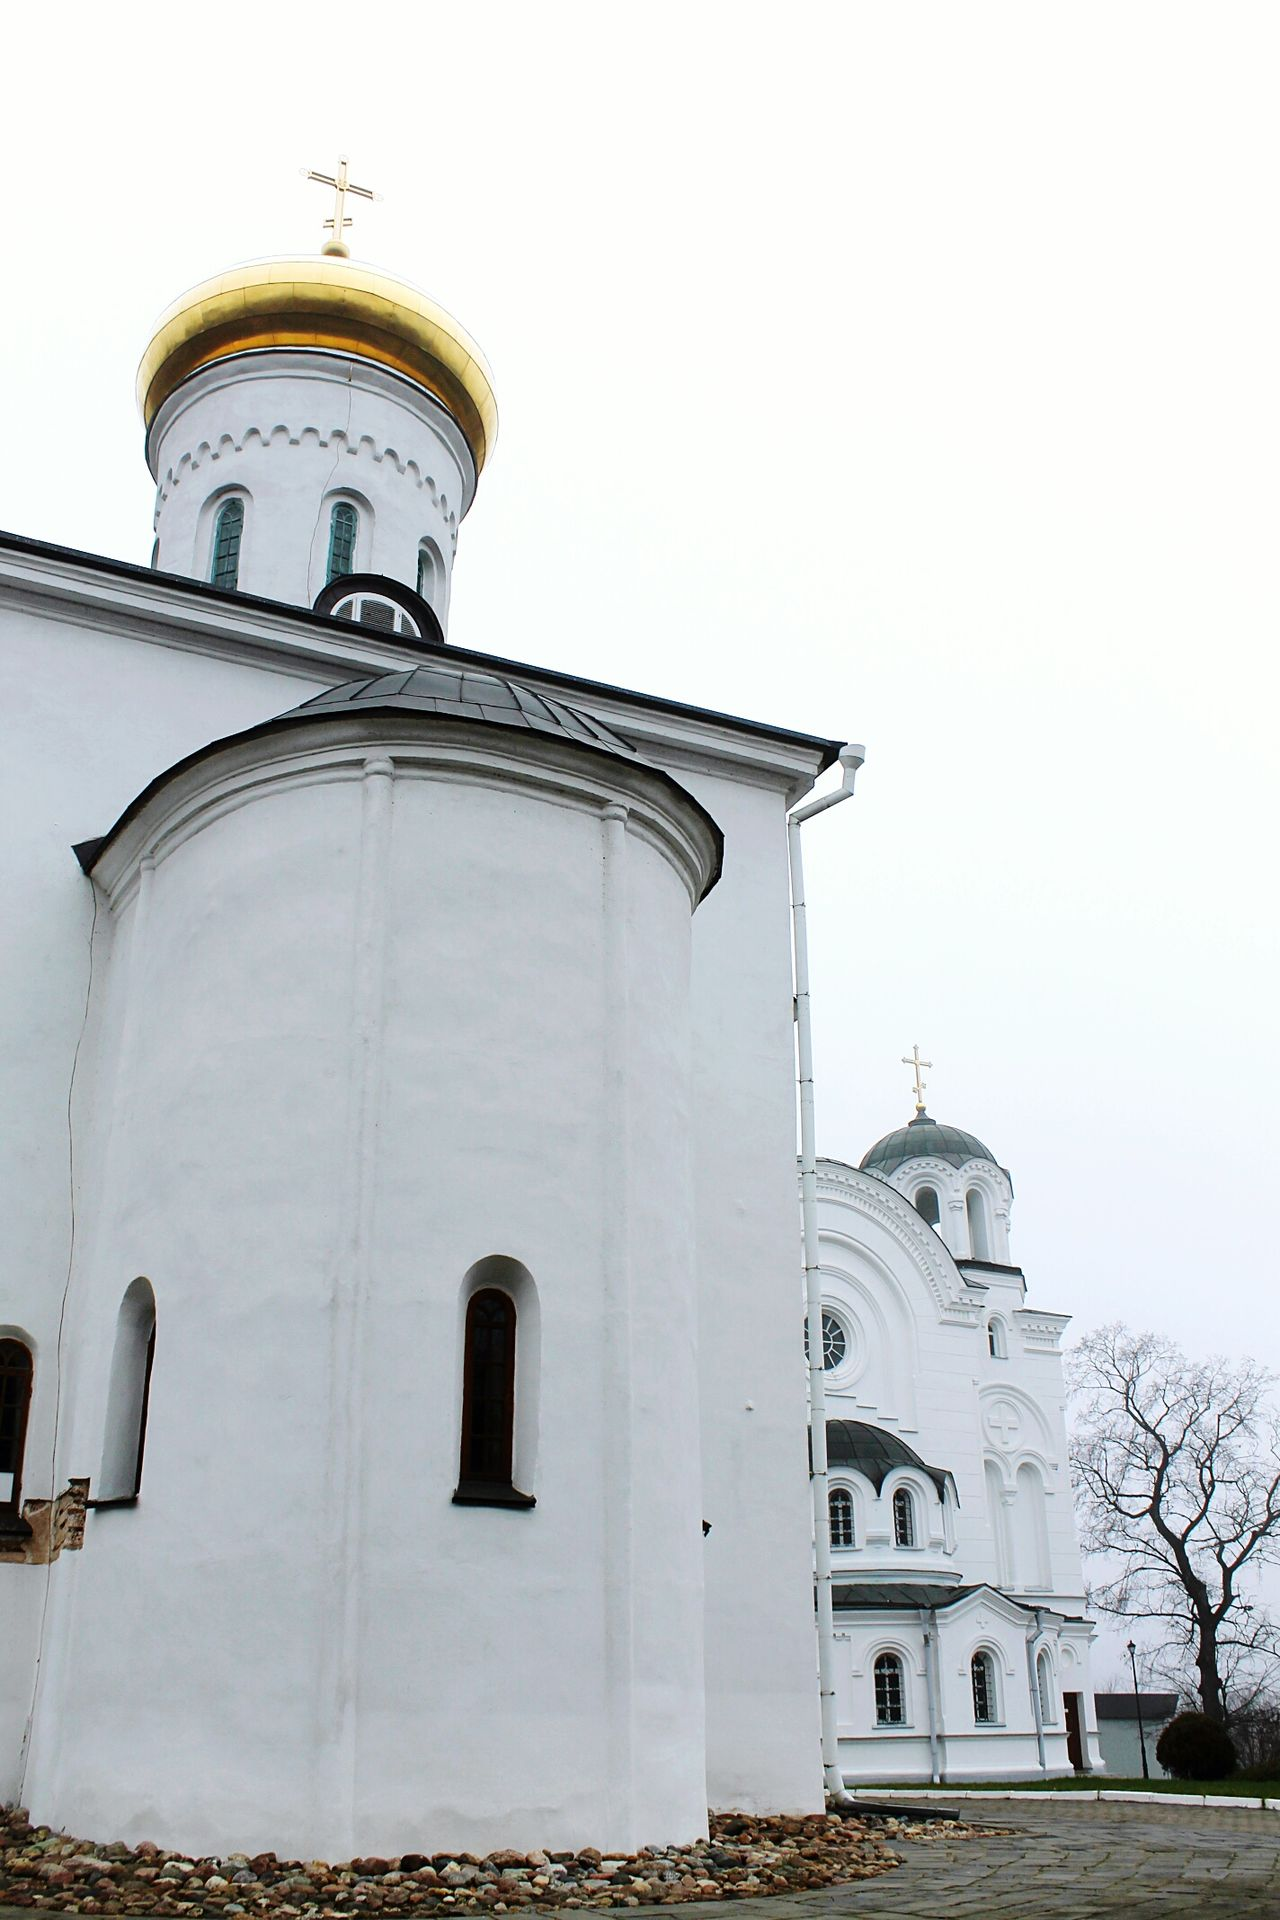 Religion History Architecture Spirituality Building Exterior Dome Monestary No People Outdoors Place Of Worship Church Cross Golden Dome Church Architecture Church Collection Day Sky Polotsk Belarus